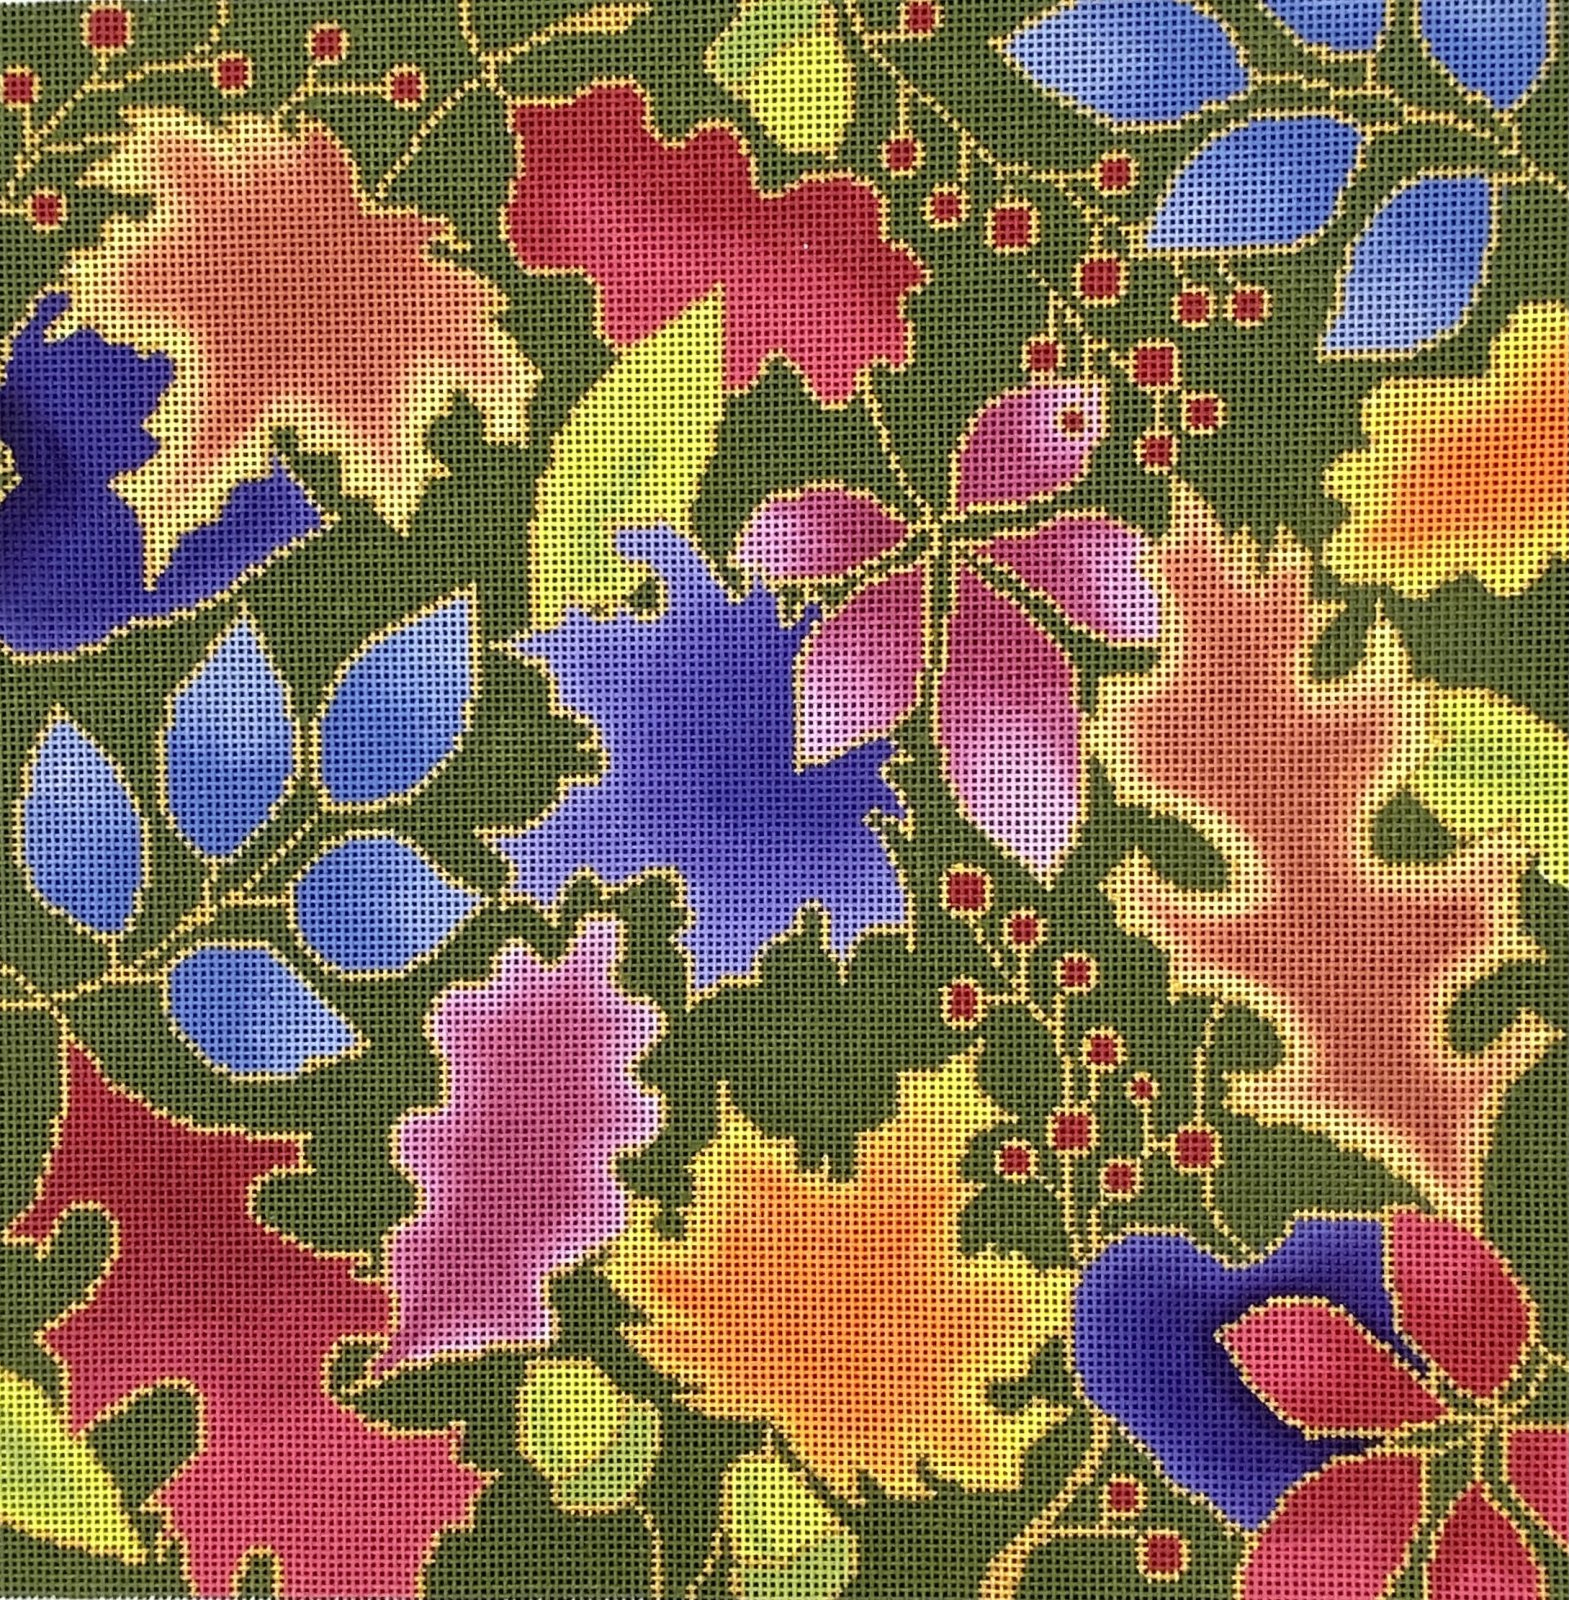 BSB512 Colorful Autumn Leaves Outlined with Gold